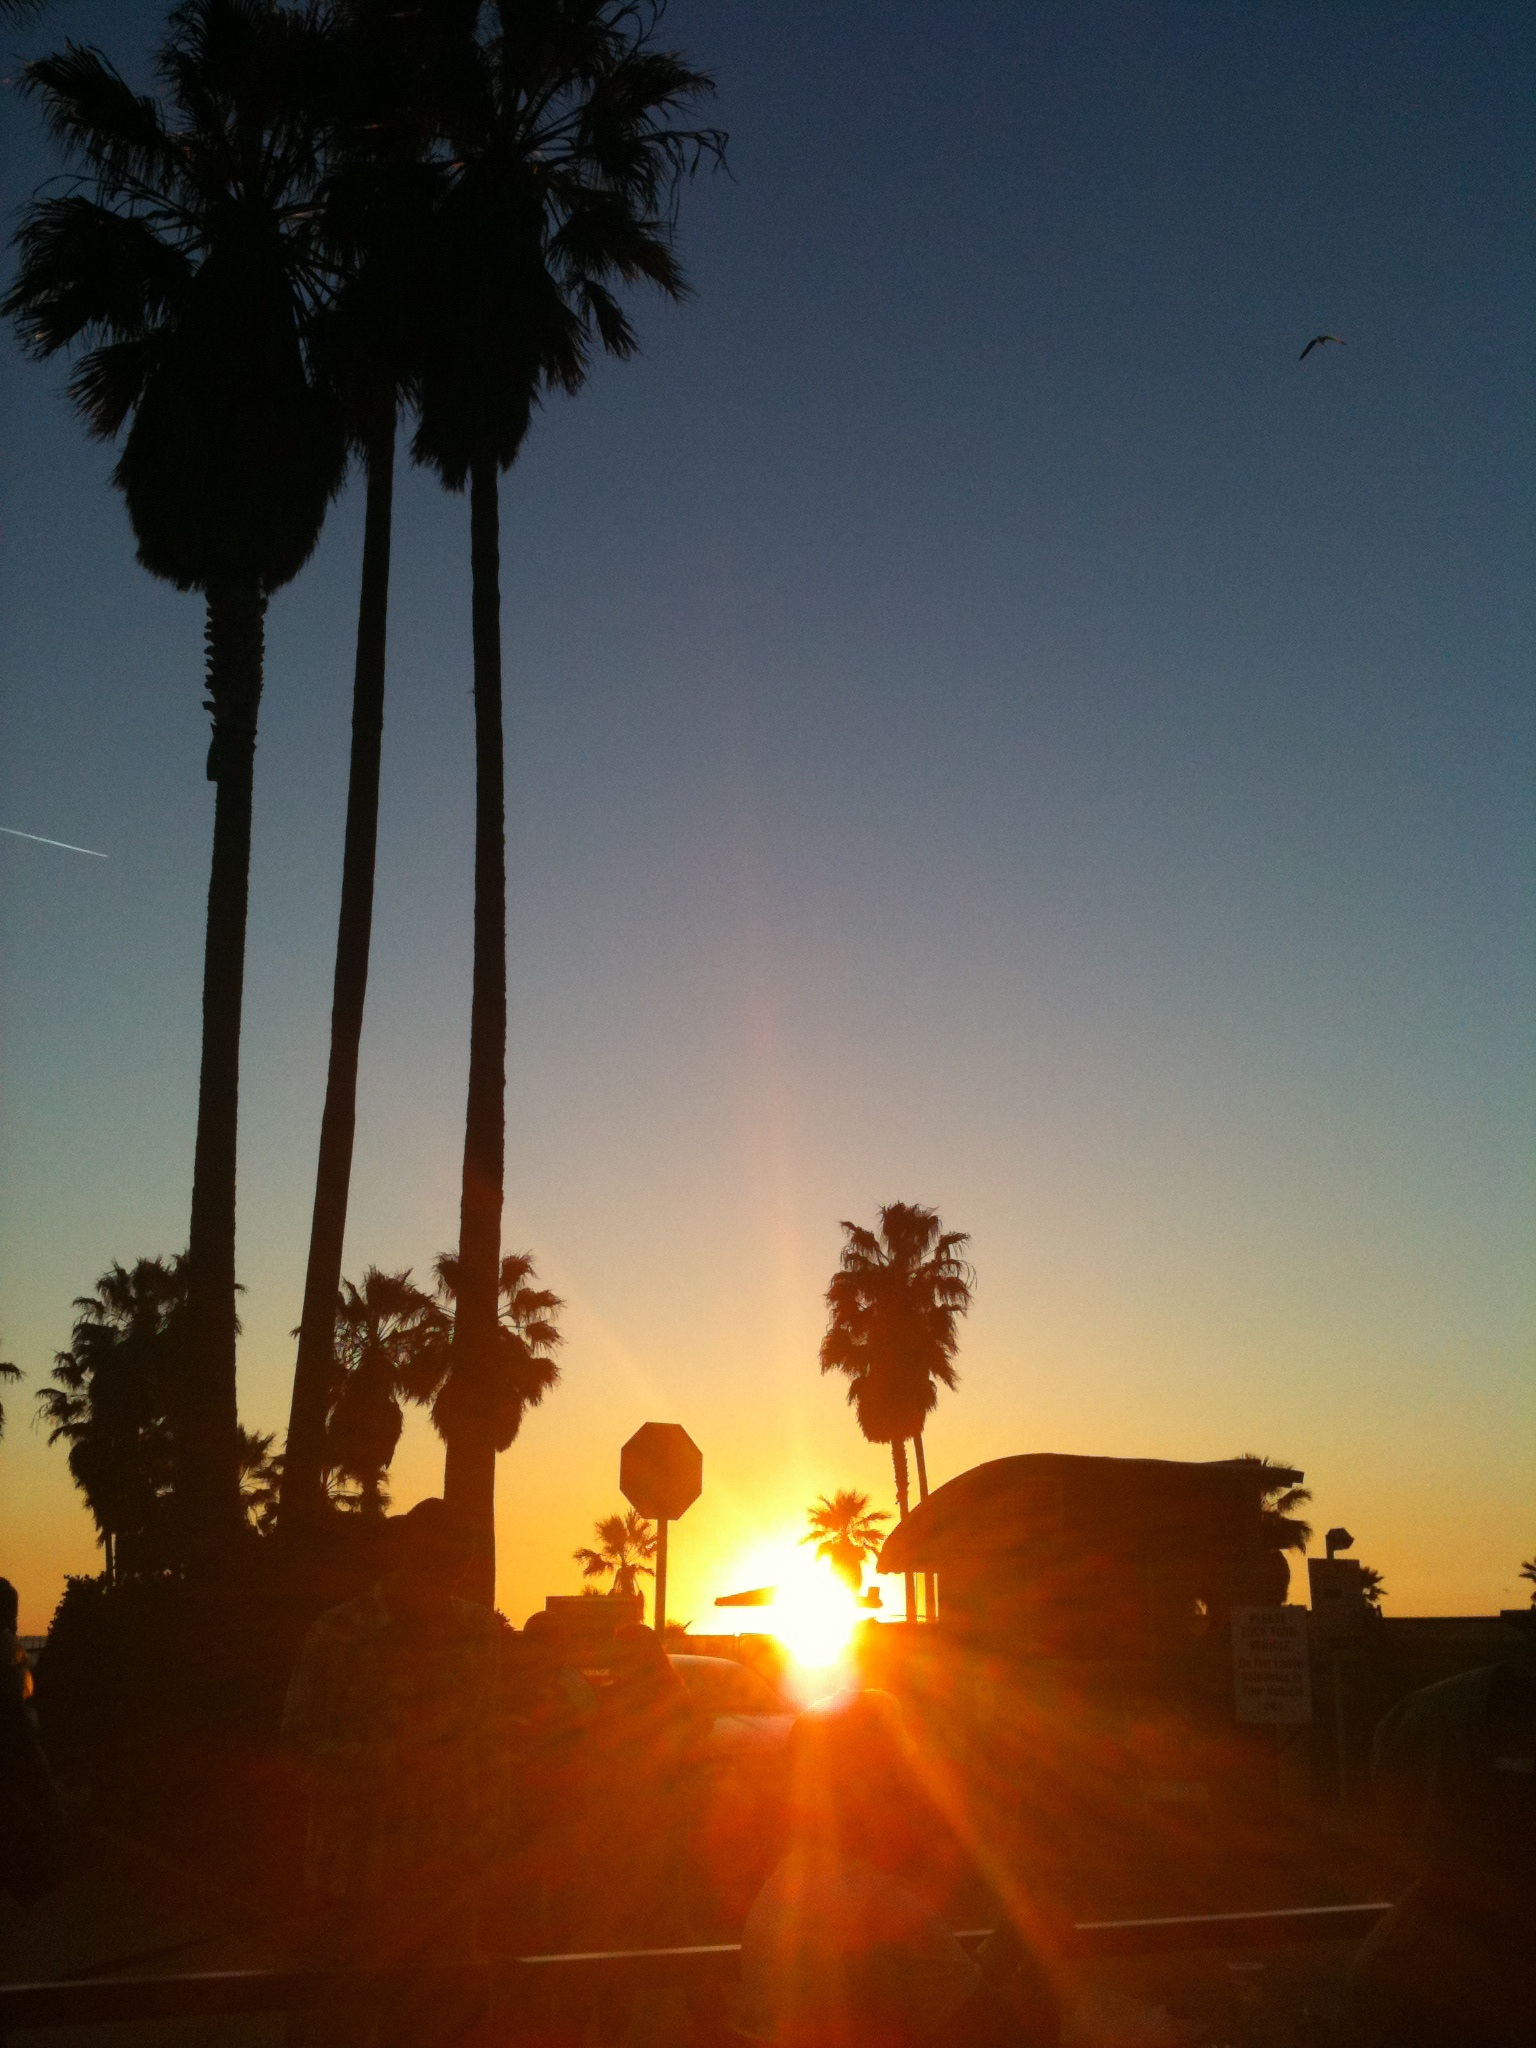 The Los Angeles Sky And Her Palm Trees Oranges And Avocados